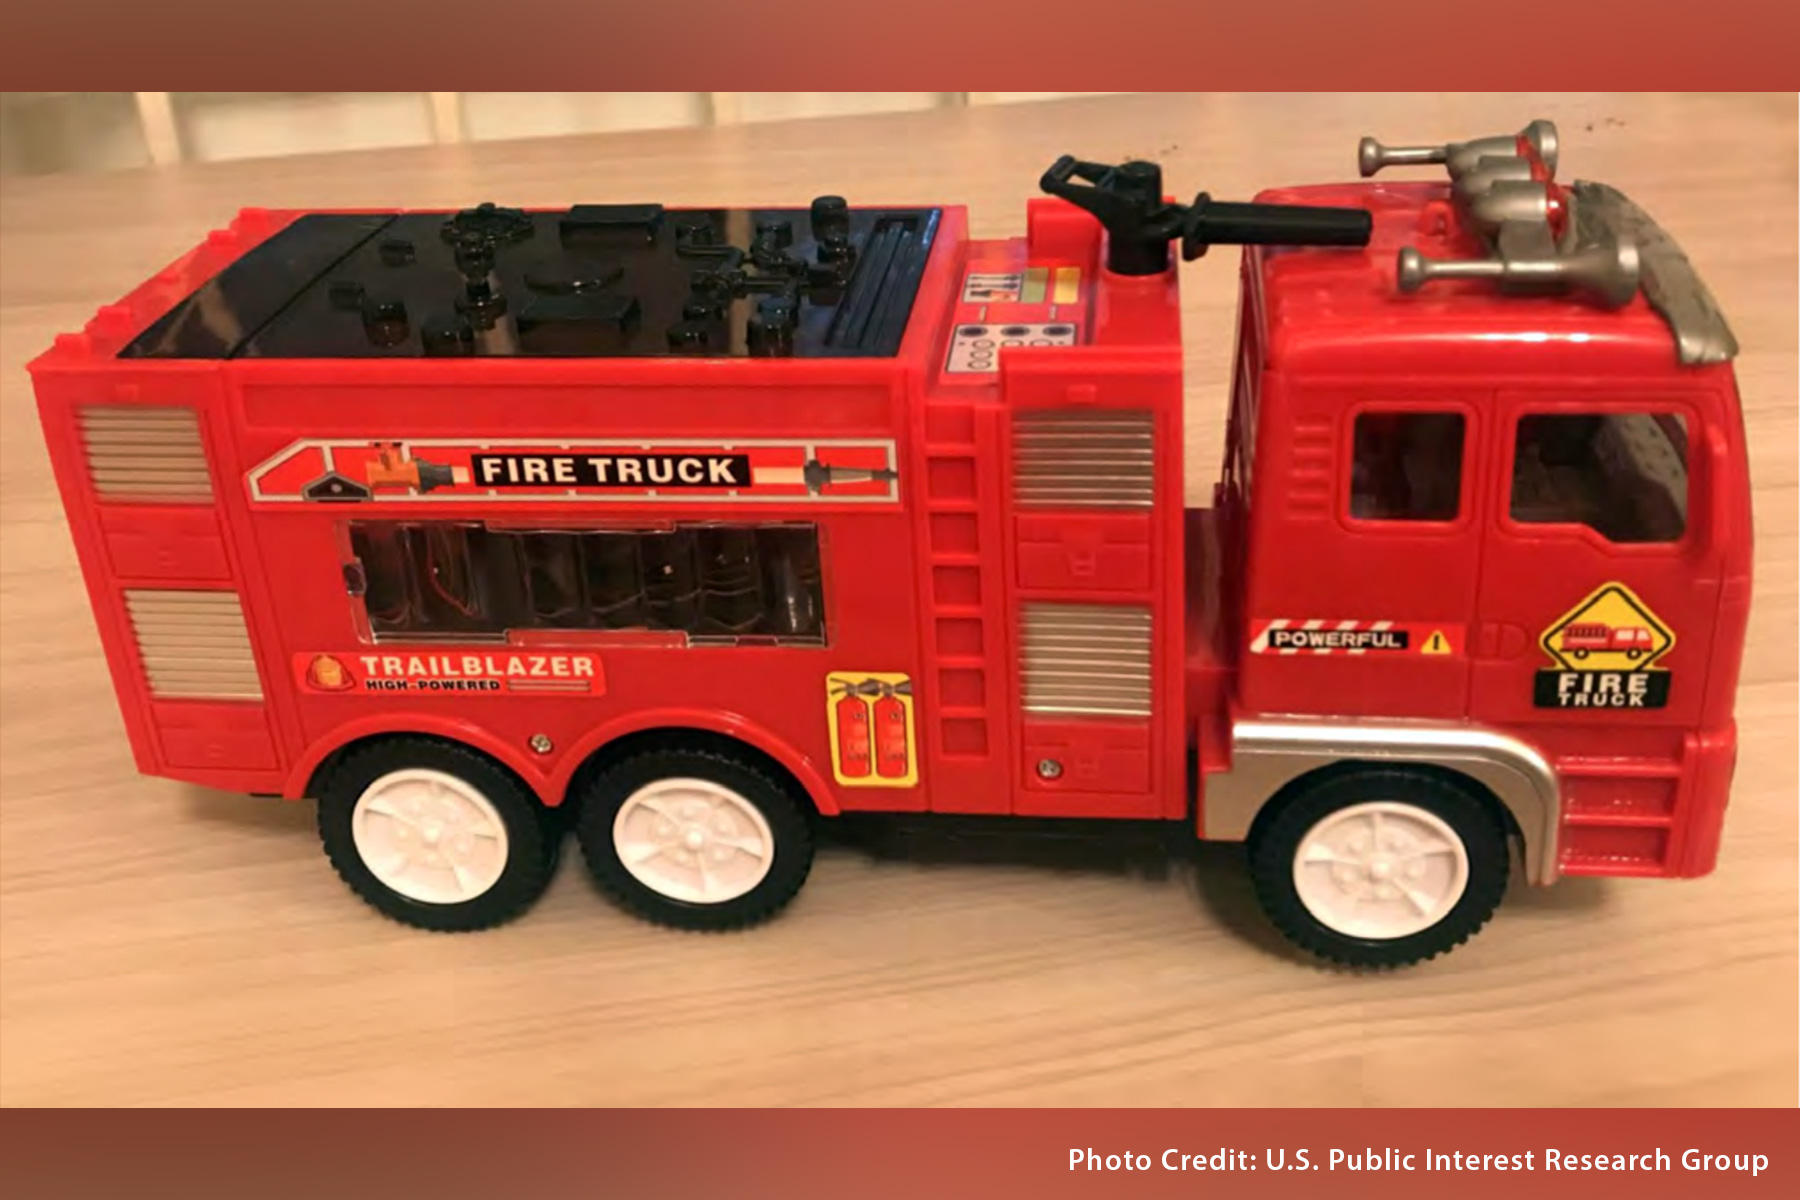 Annual Report Highlights Dangerous Toys